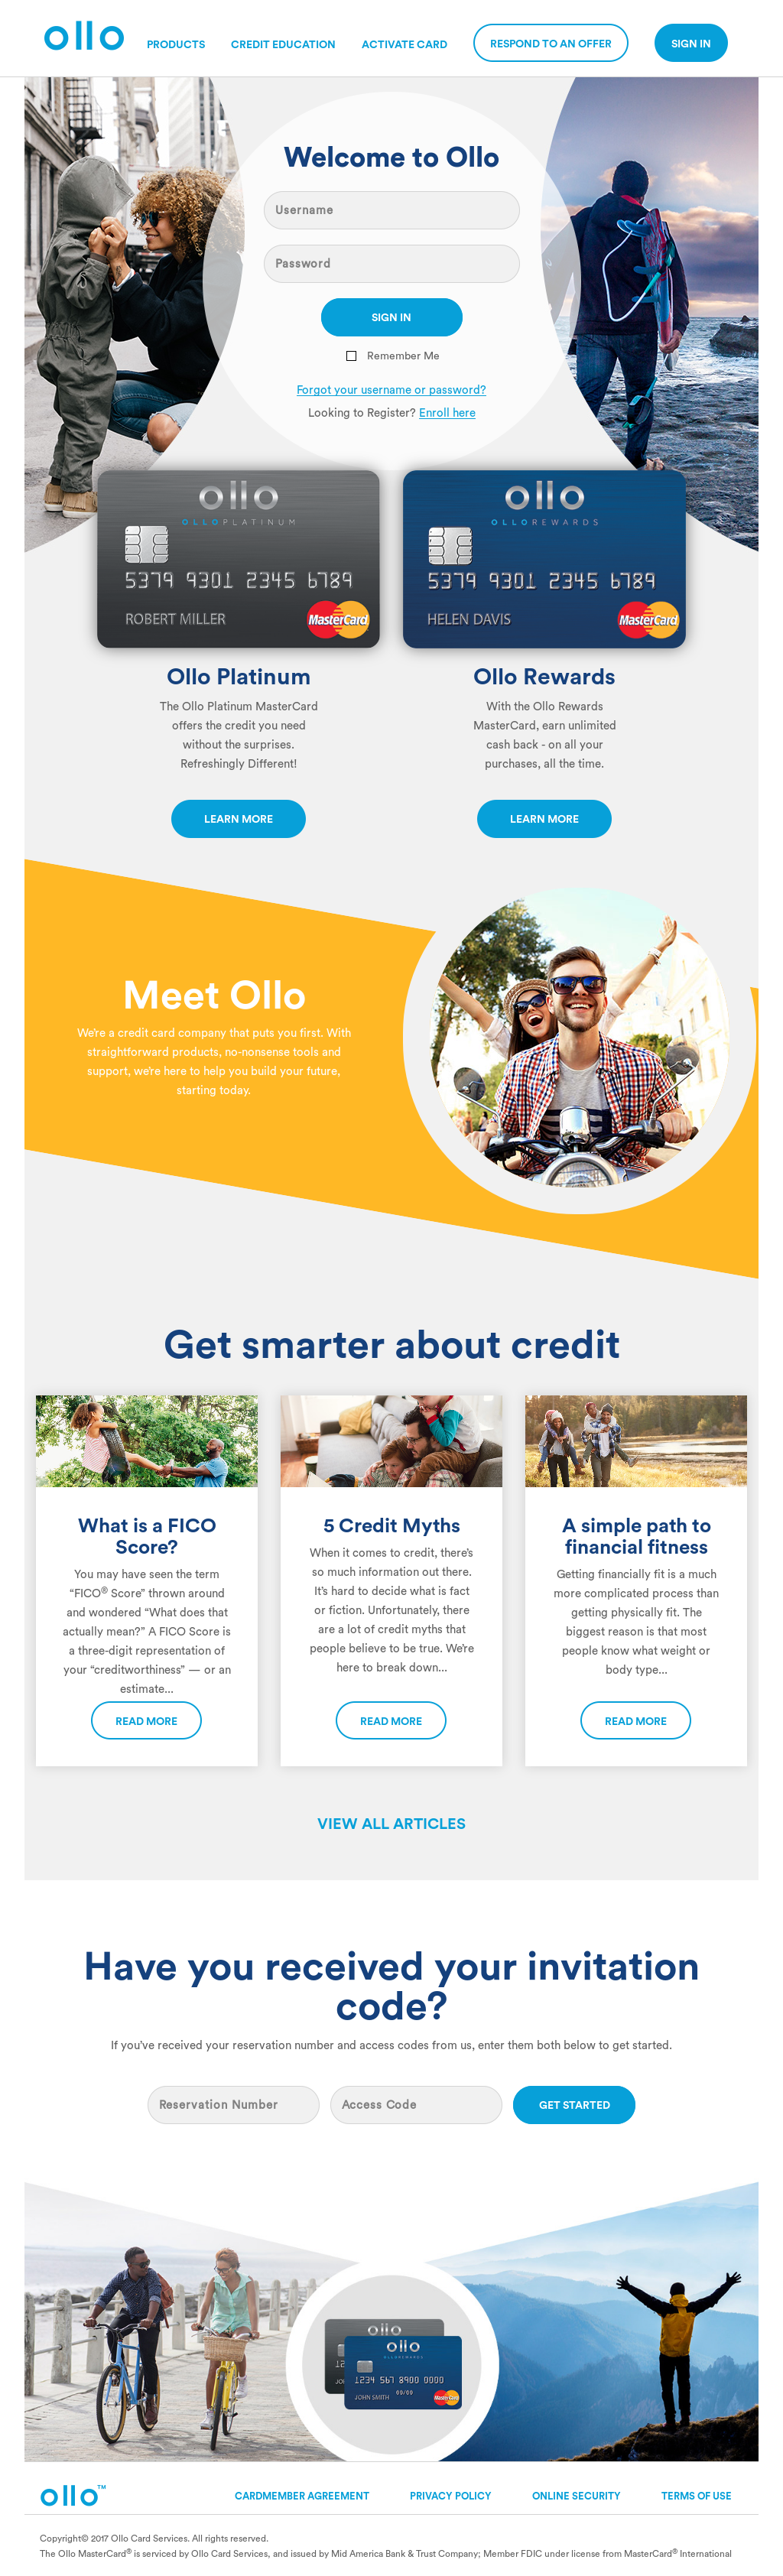 Ollo Card Services Competitors, Revenue and Employees - Owler Company Profile